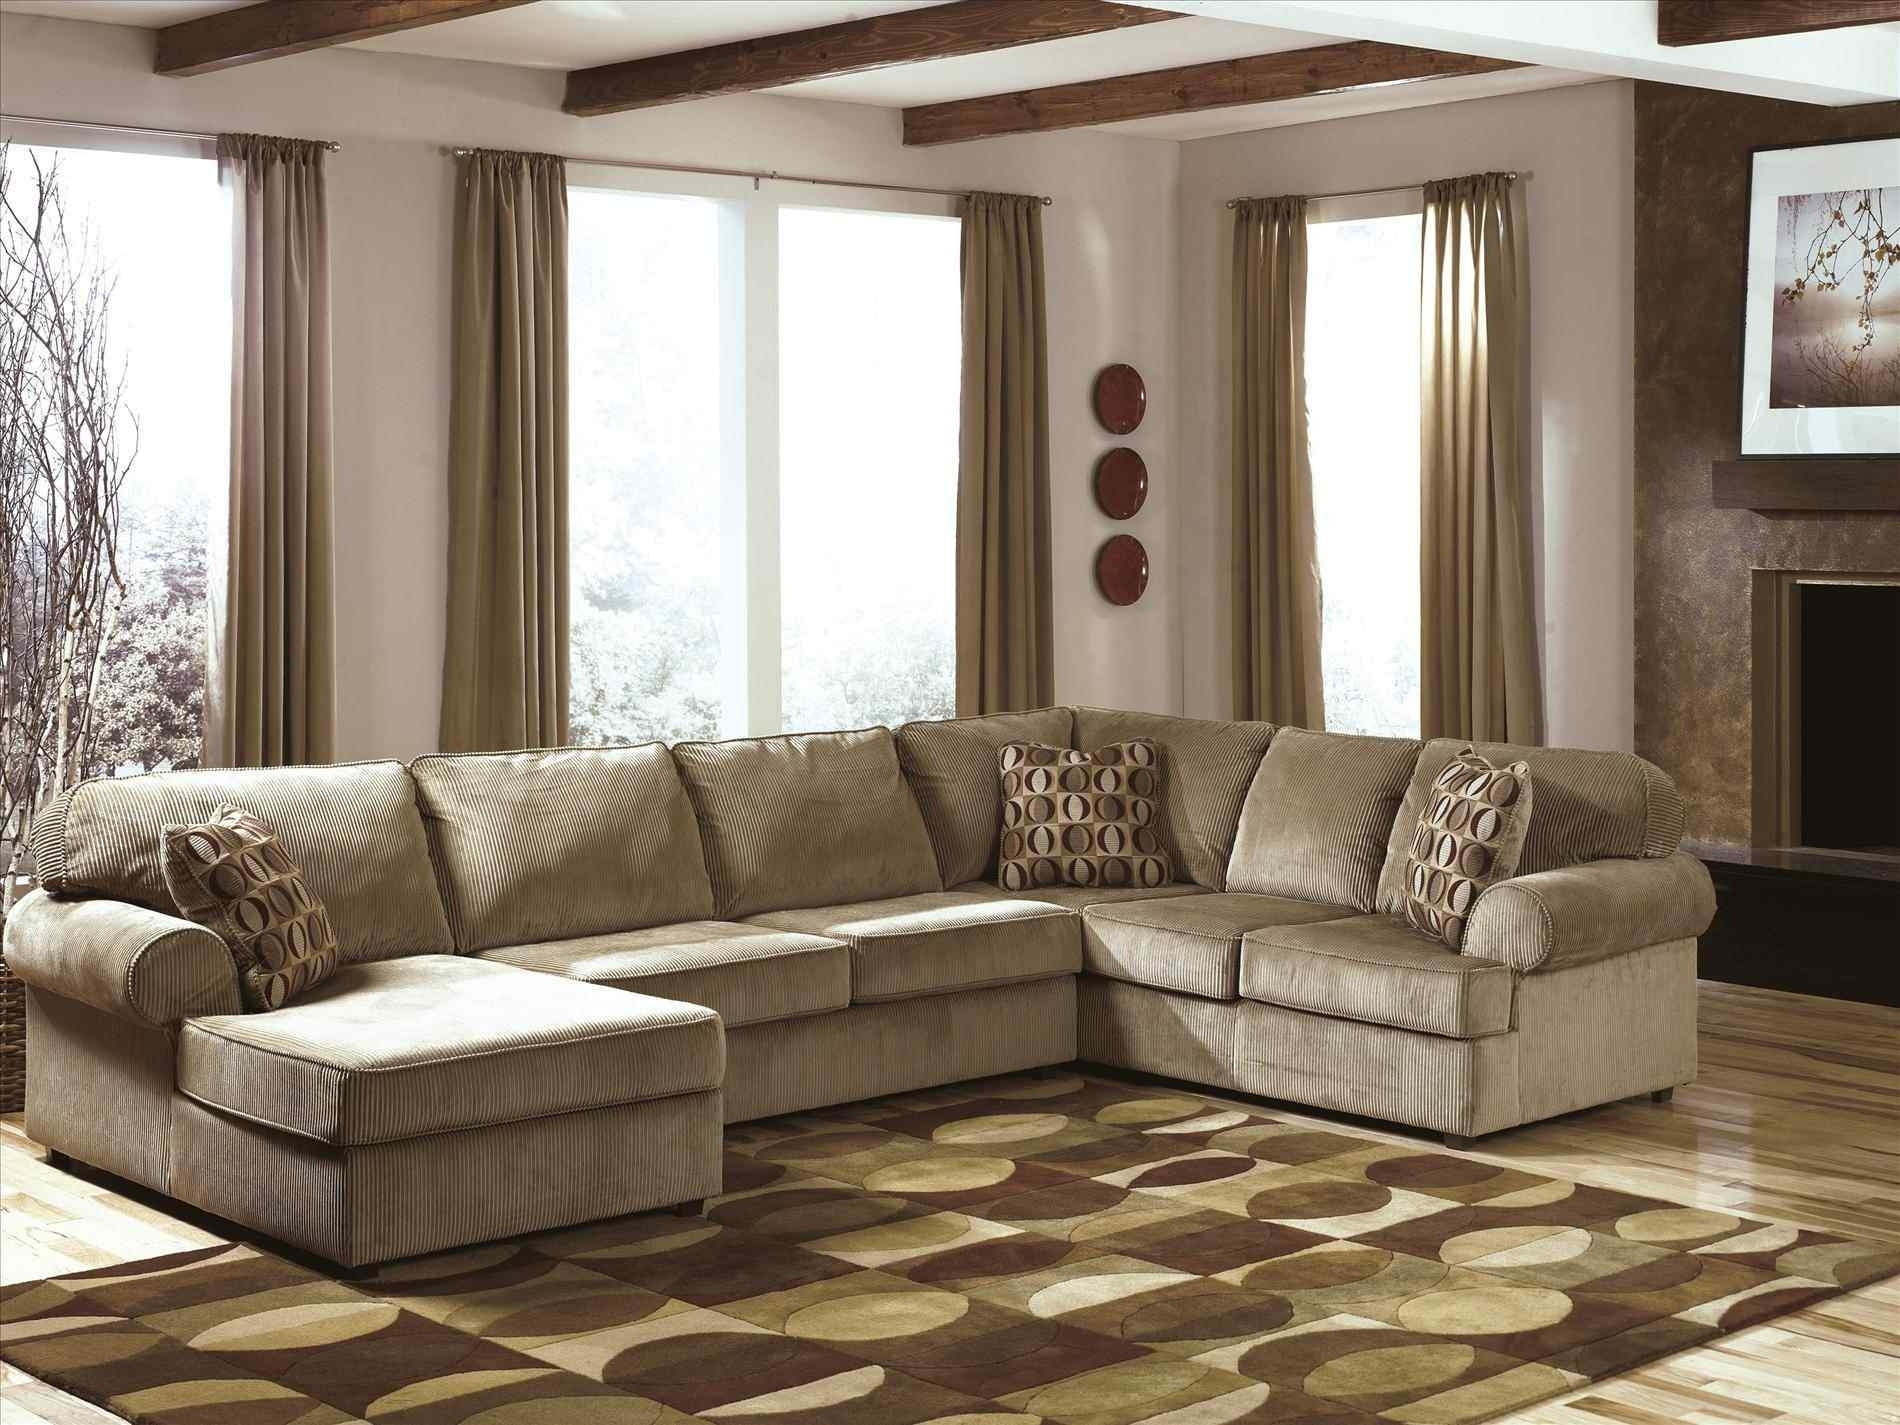 Sectional Sofas Cheap Tufted Ottoman Used Furniture Ottawa For Sale In Ottawa Sectional Sofas (View 10 of 10)